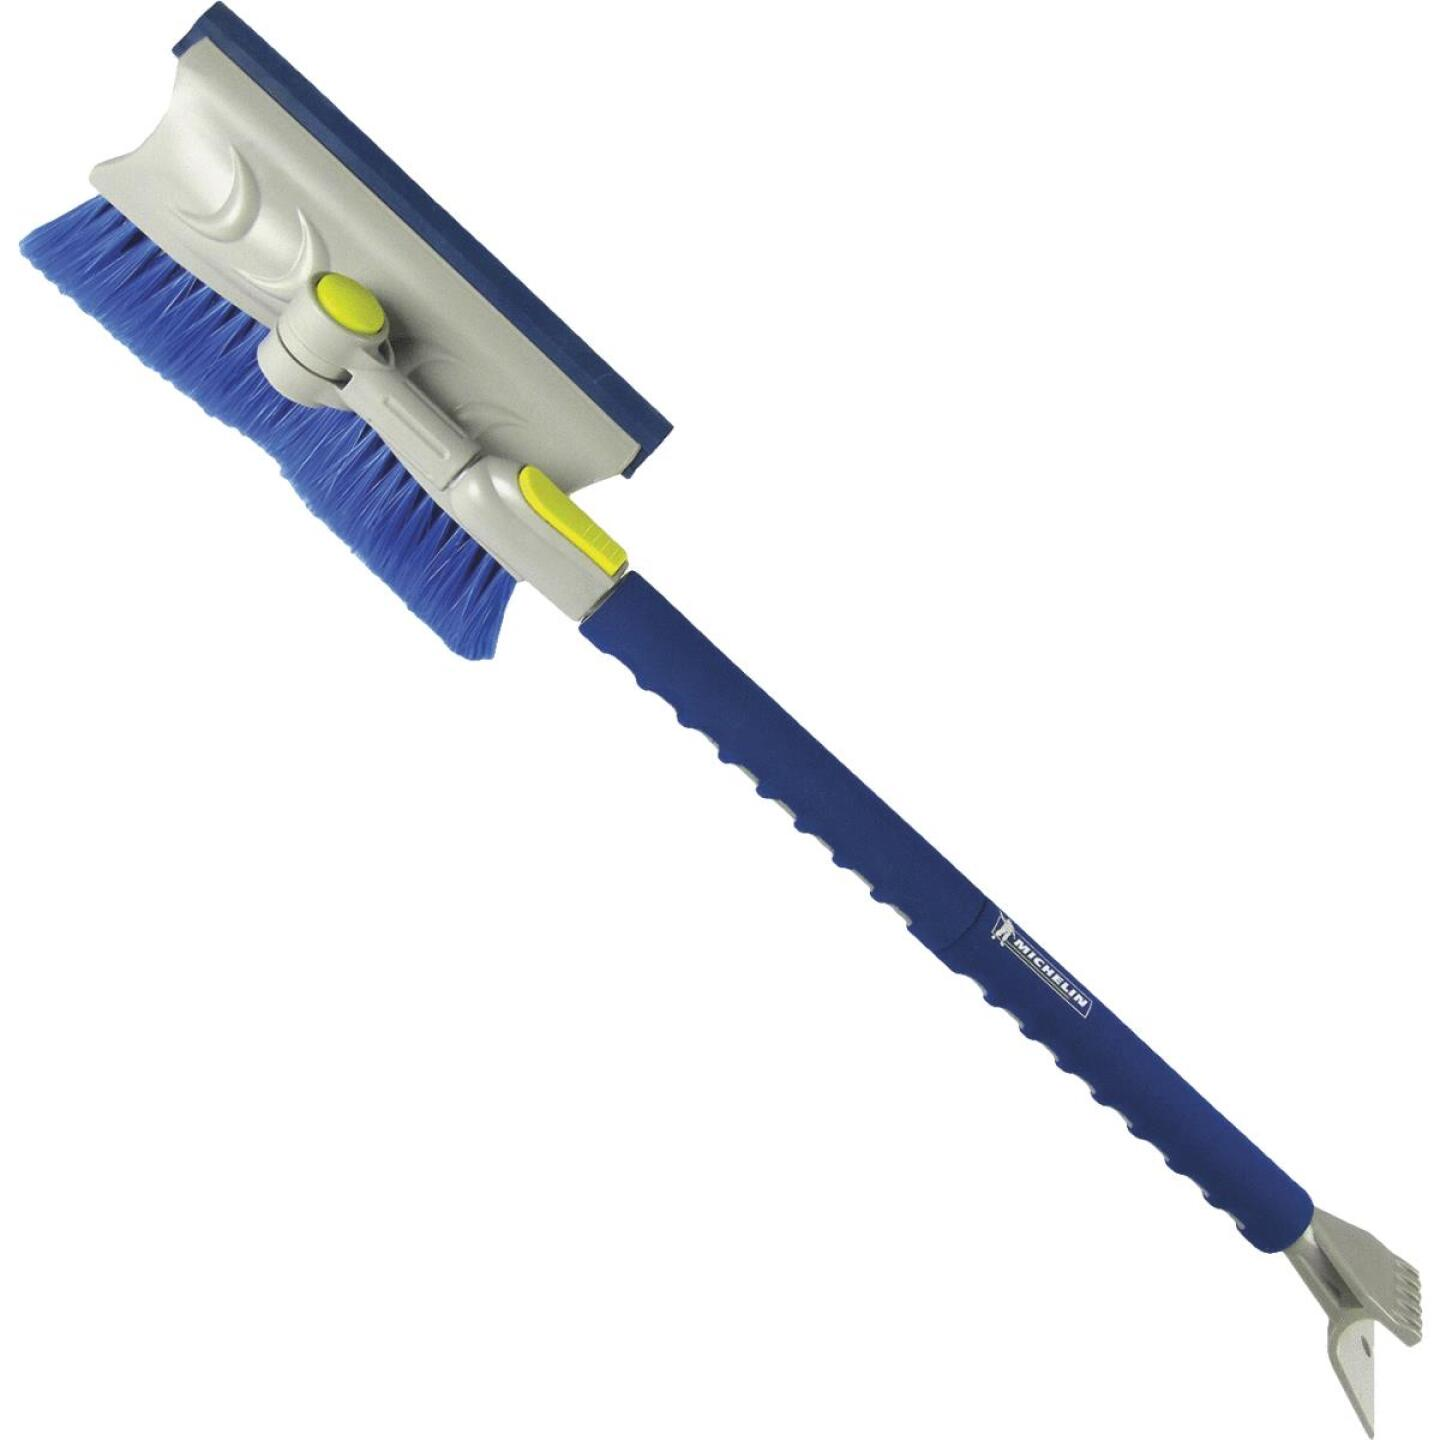 Michelin Colossal 50 In. Steel Extendable Snowbrush with Scraper and Ice Chipper Image 1